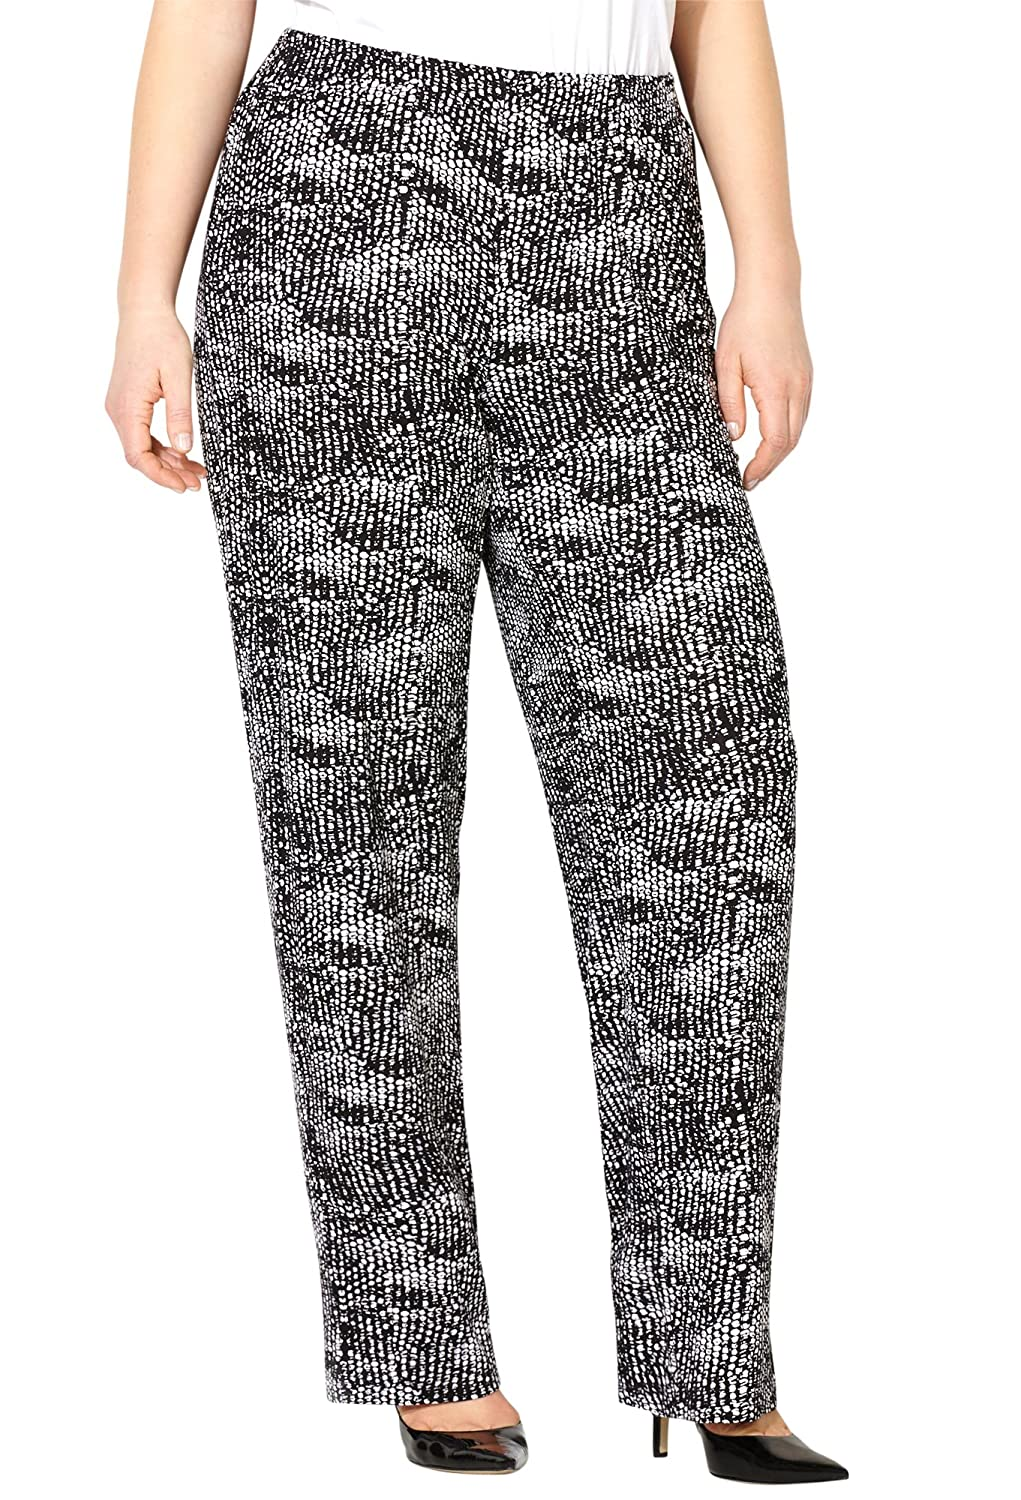 Avenue Women's Pebble Print Pull-On Pant miracle on 5th avenue